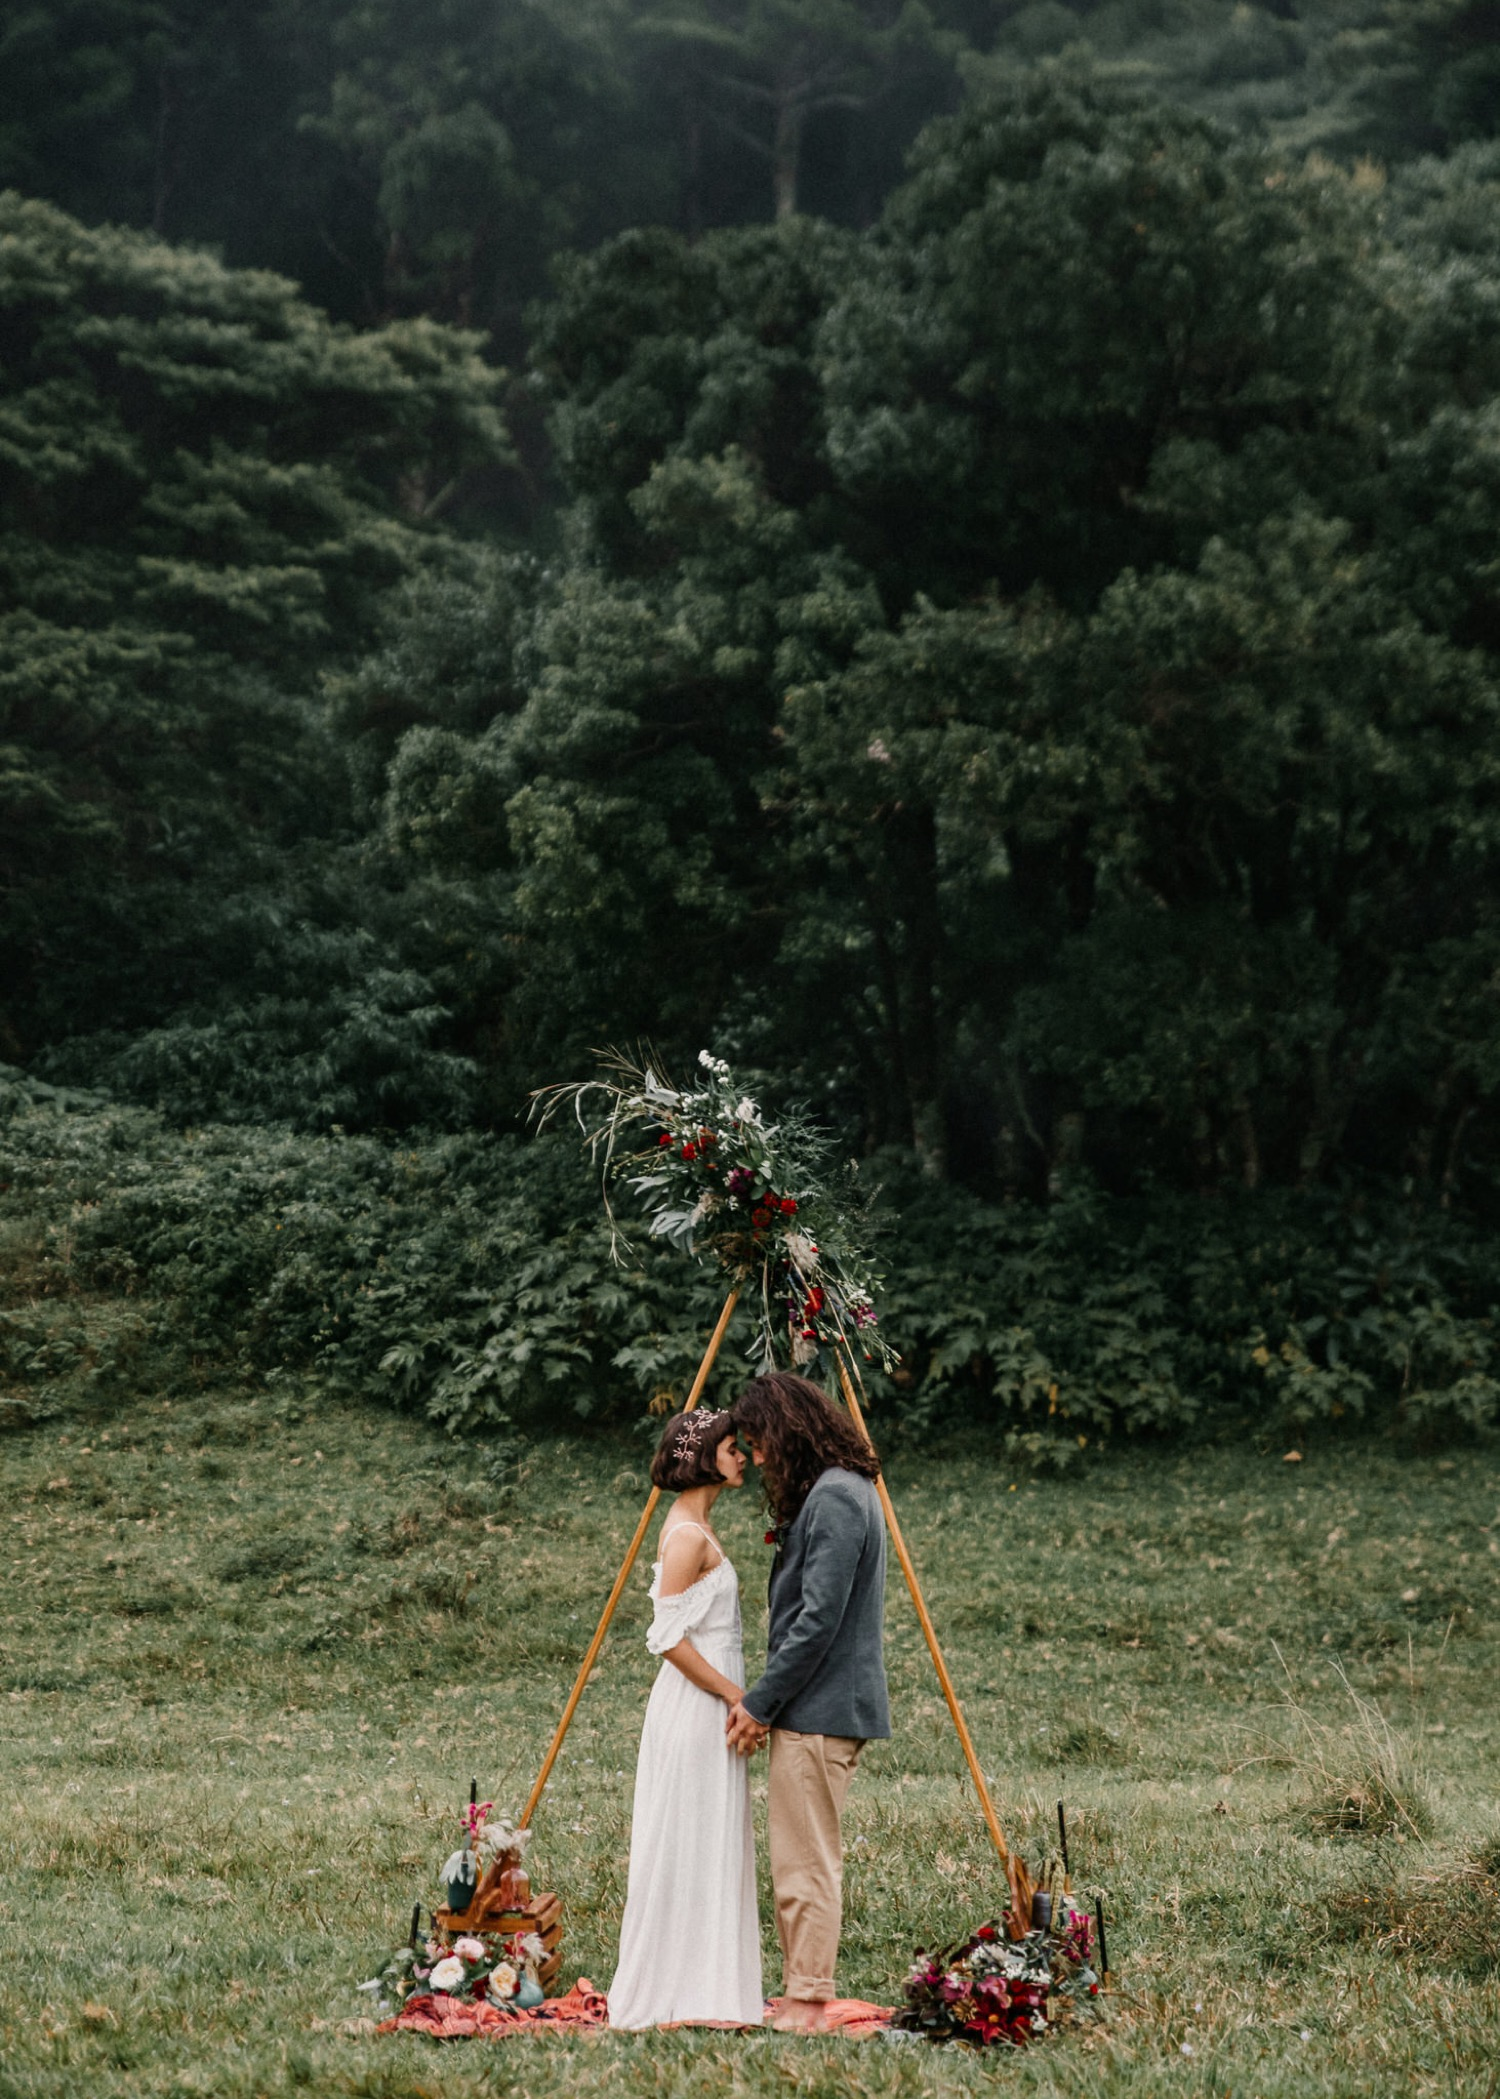 Costa Rica Wedding Photography by Raw Shoots - featured